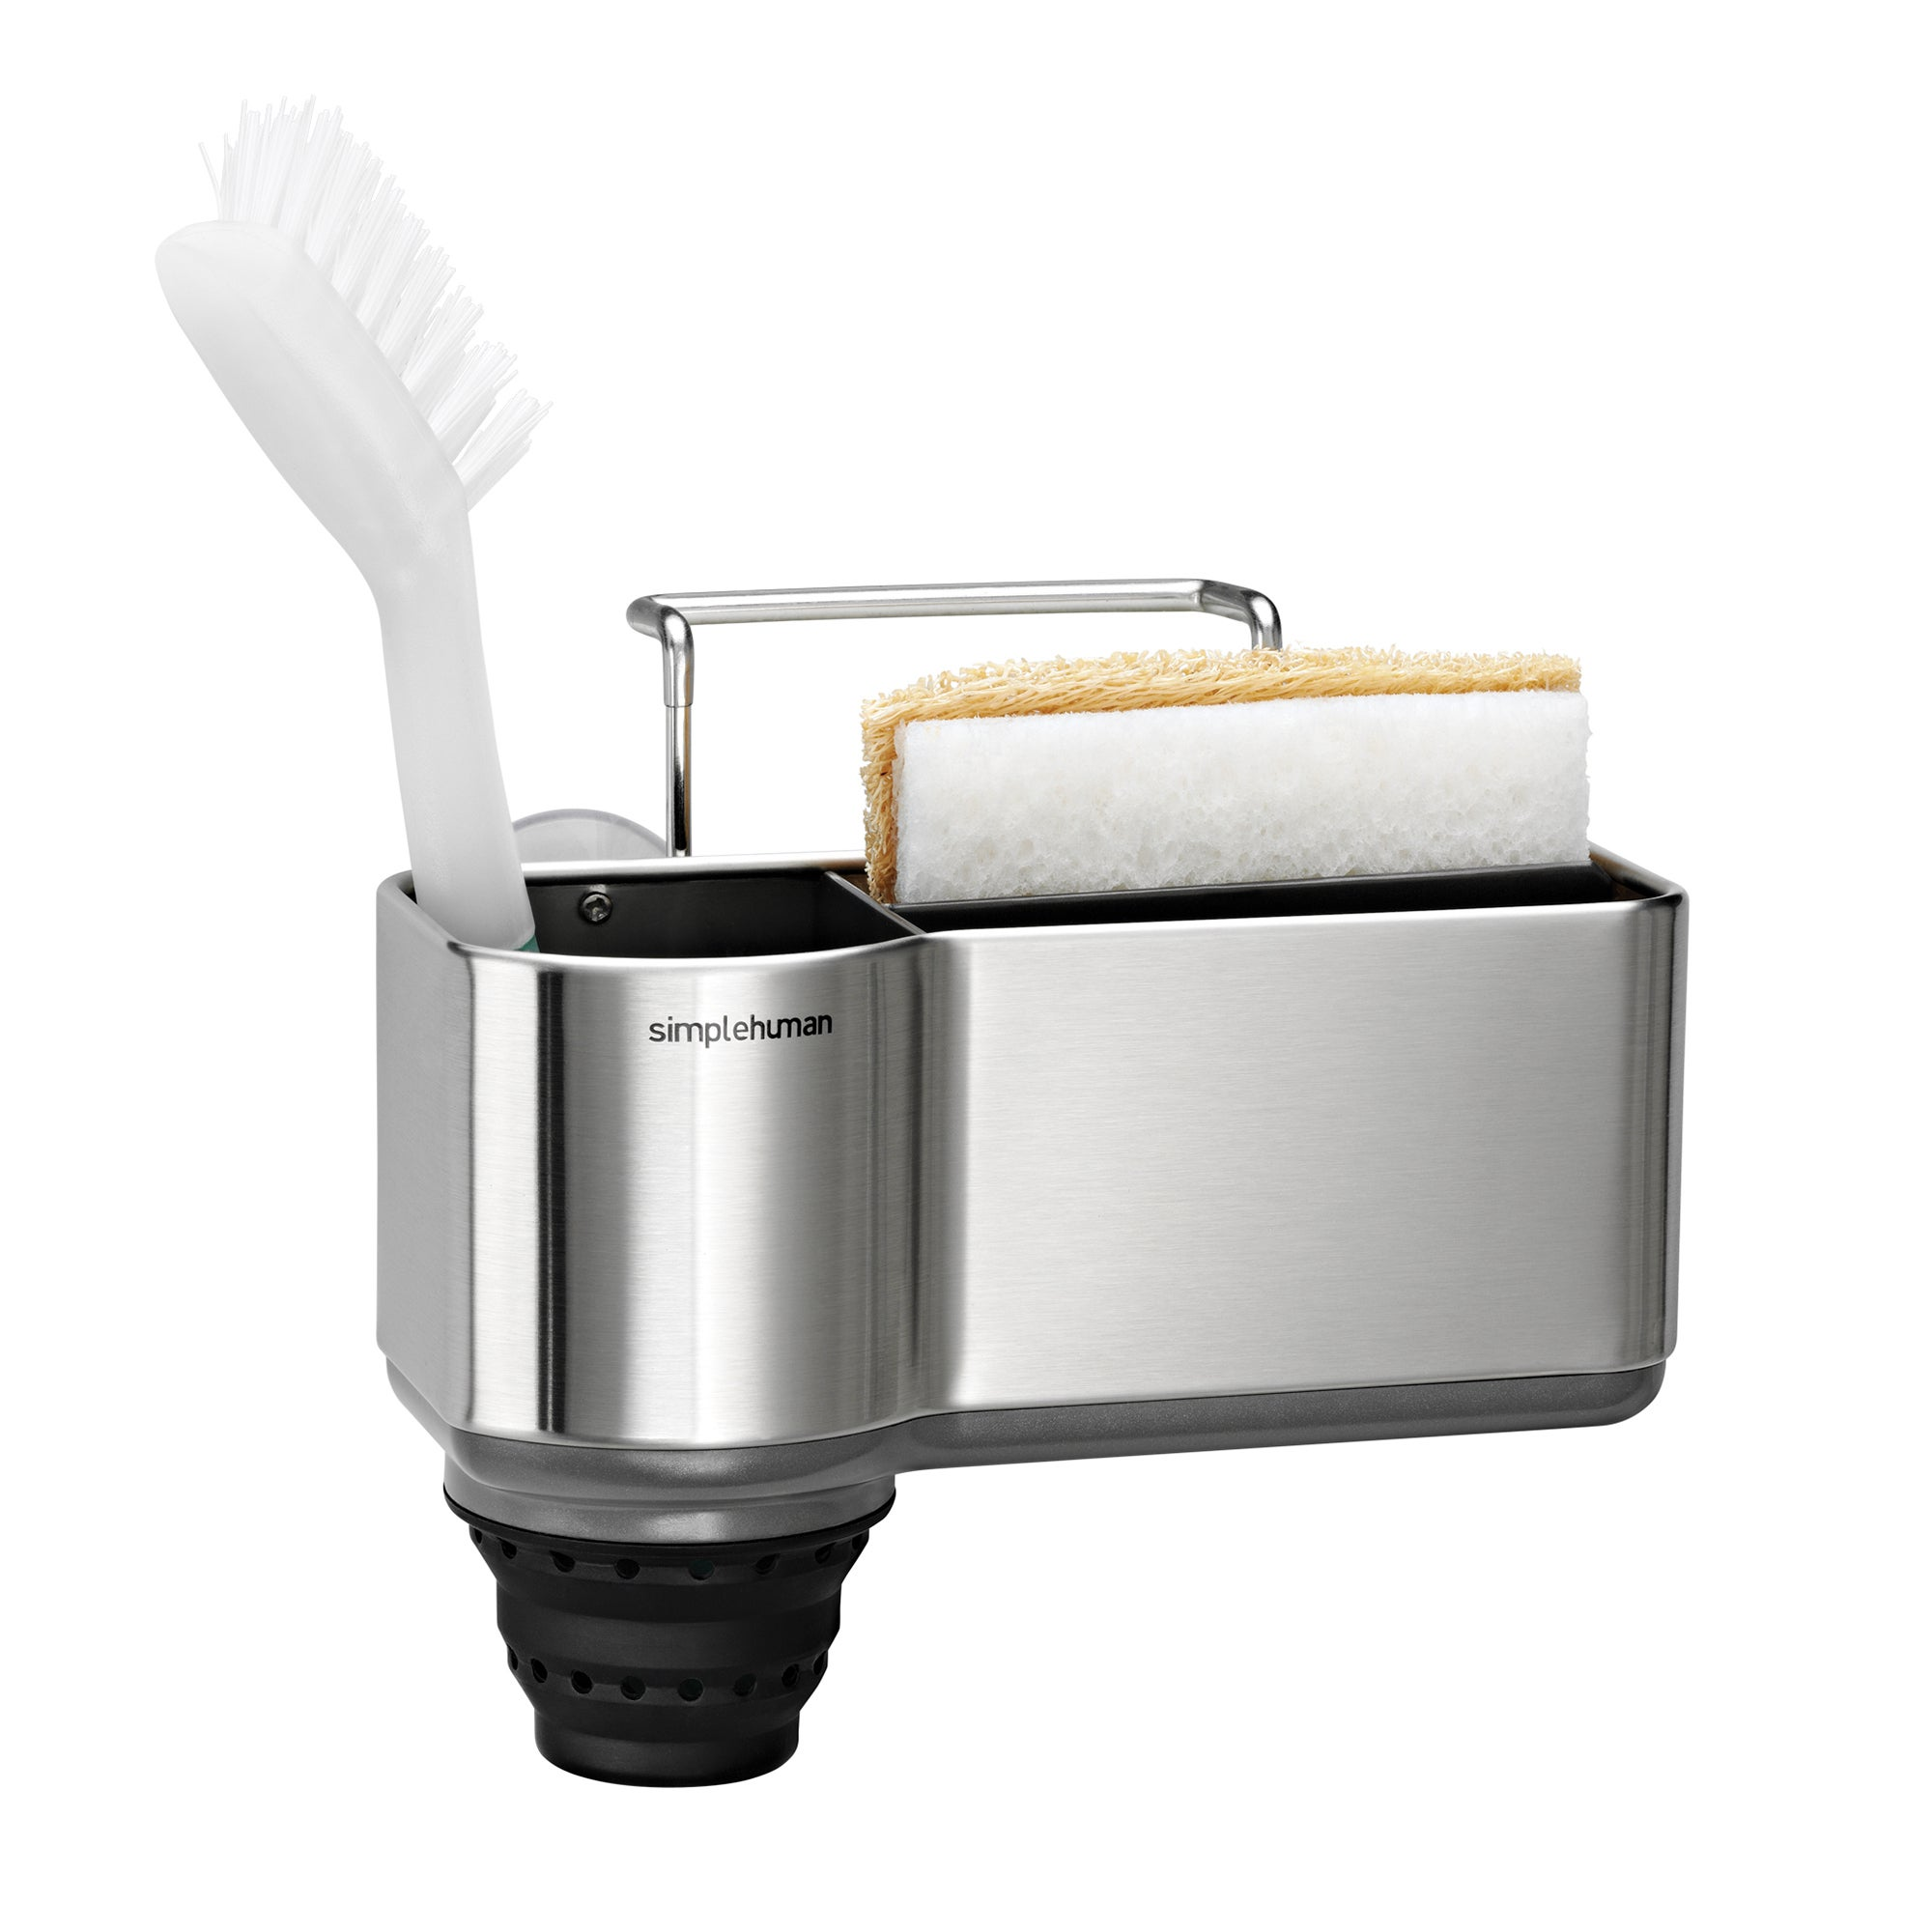 Photo of Simplehuman sink caddy silver